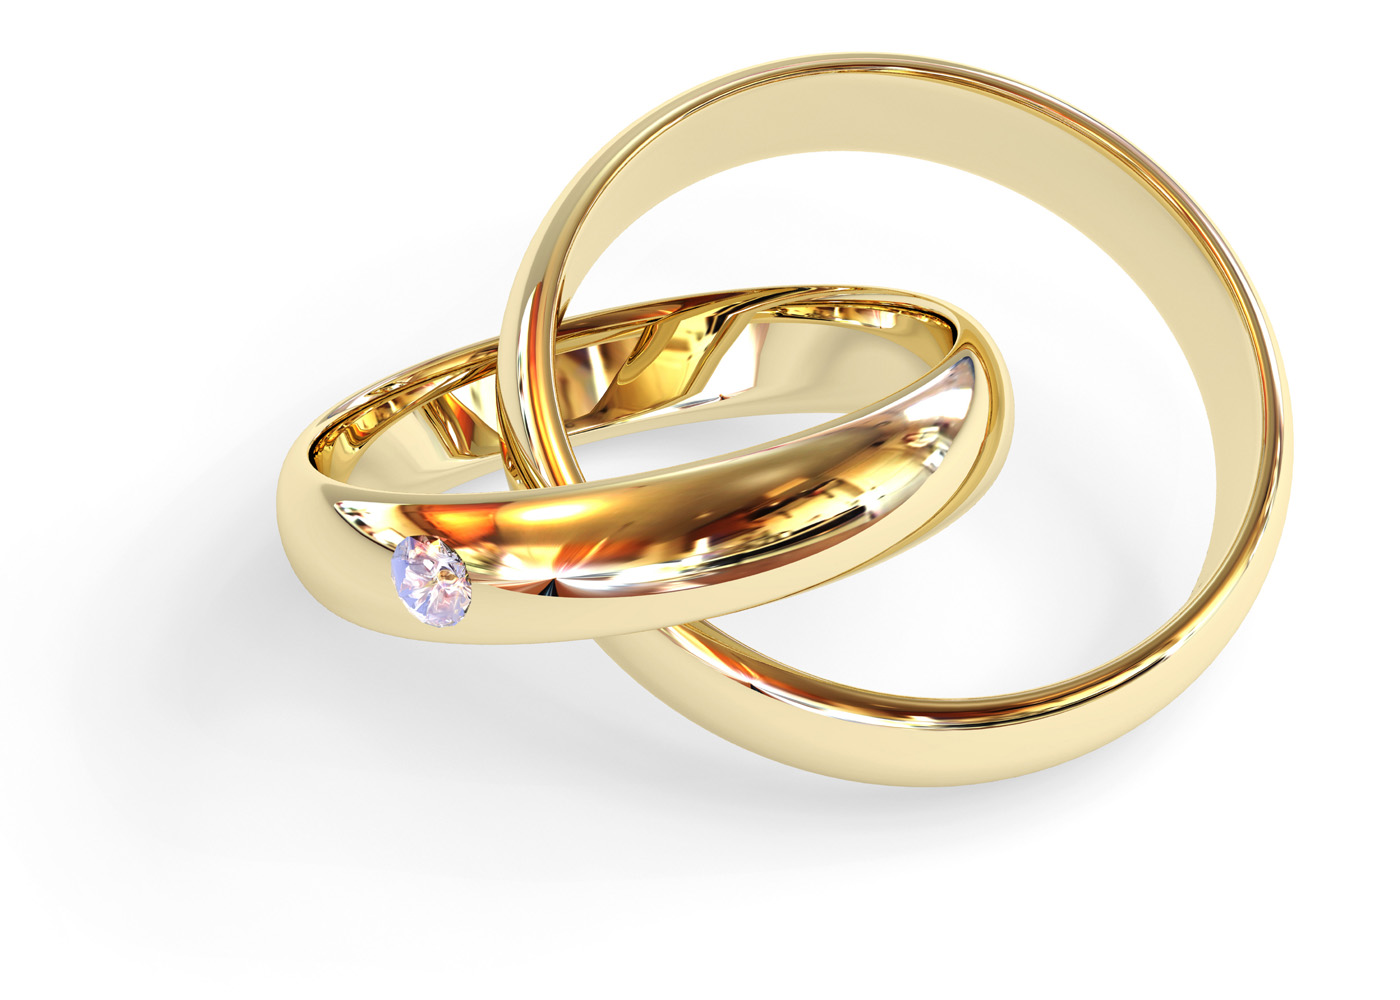 wedding rings wallpapers high quality free